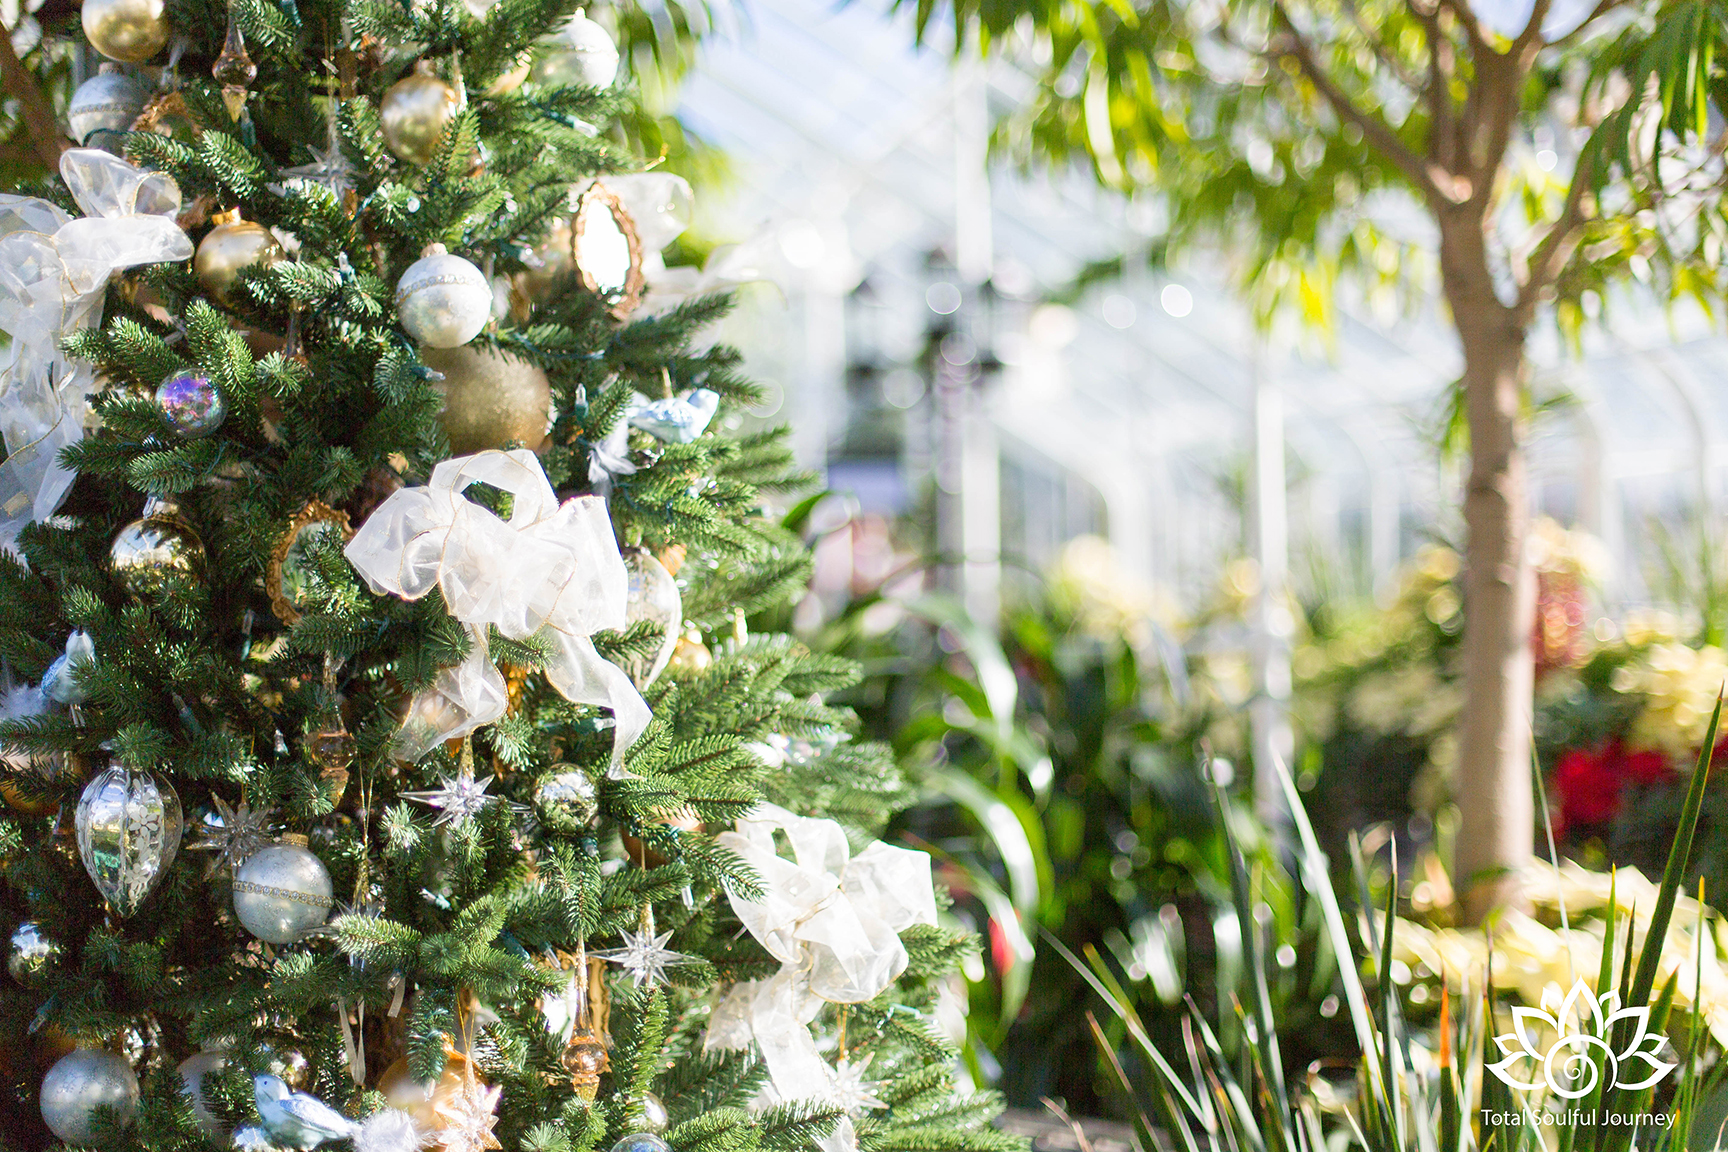 The magic of Christmas at the Volunteer Park Conservatory - Photography by Paul Garrett